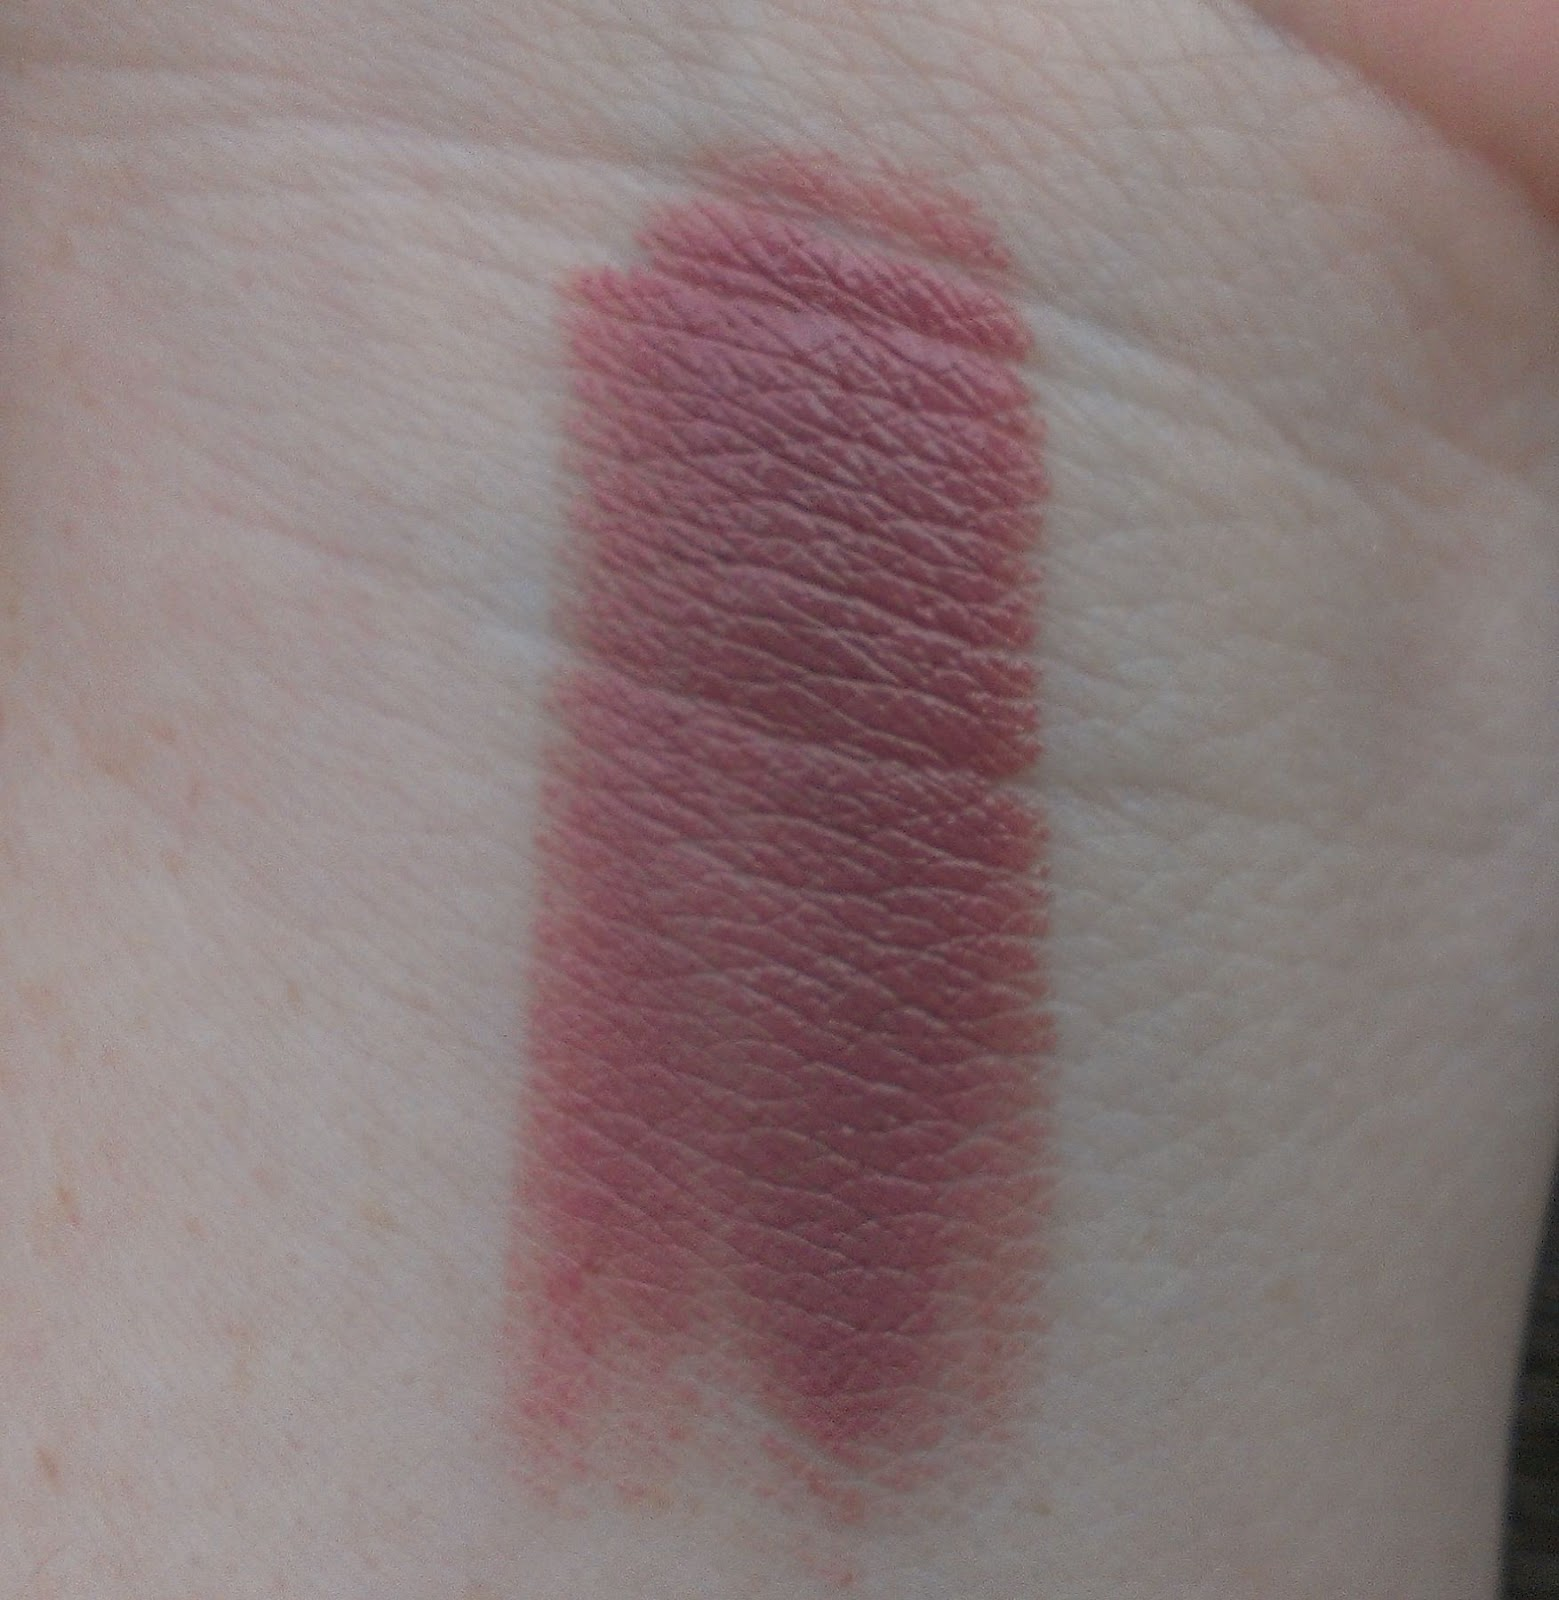 theres always time for lipstick oldie but goodie nyx